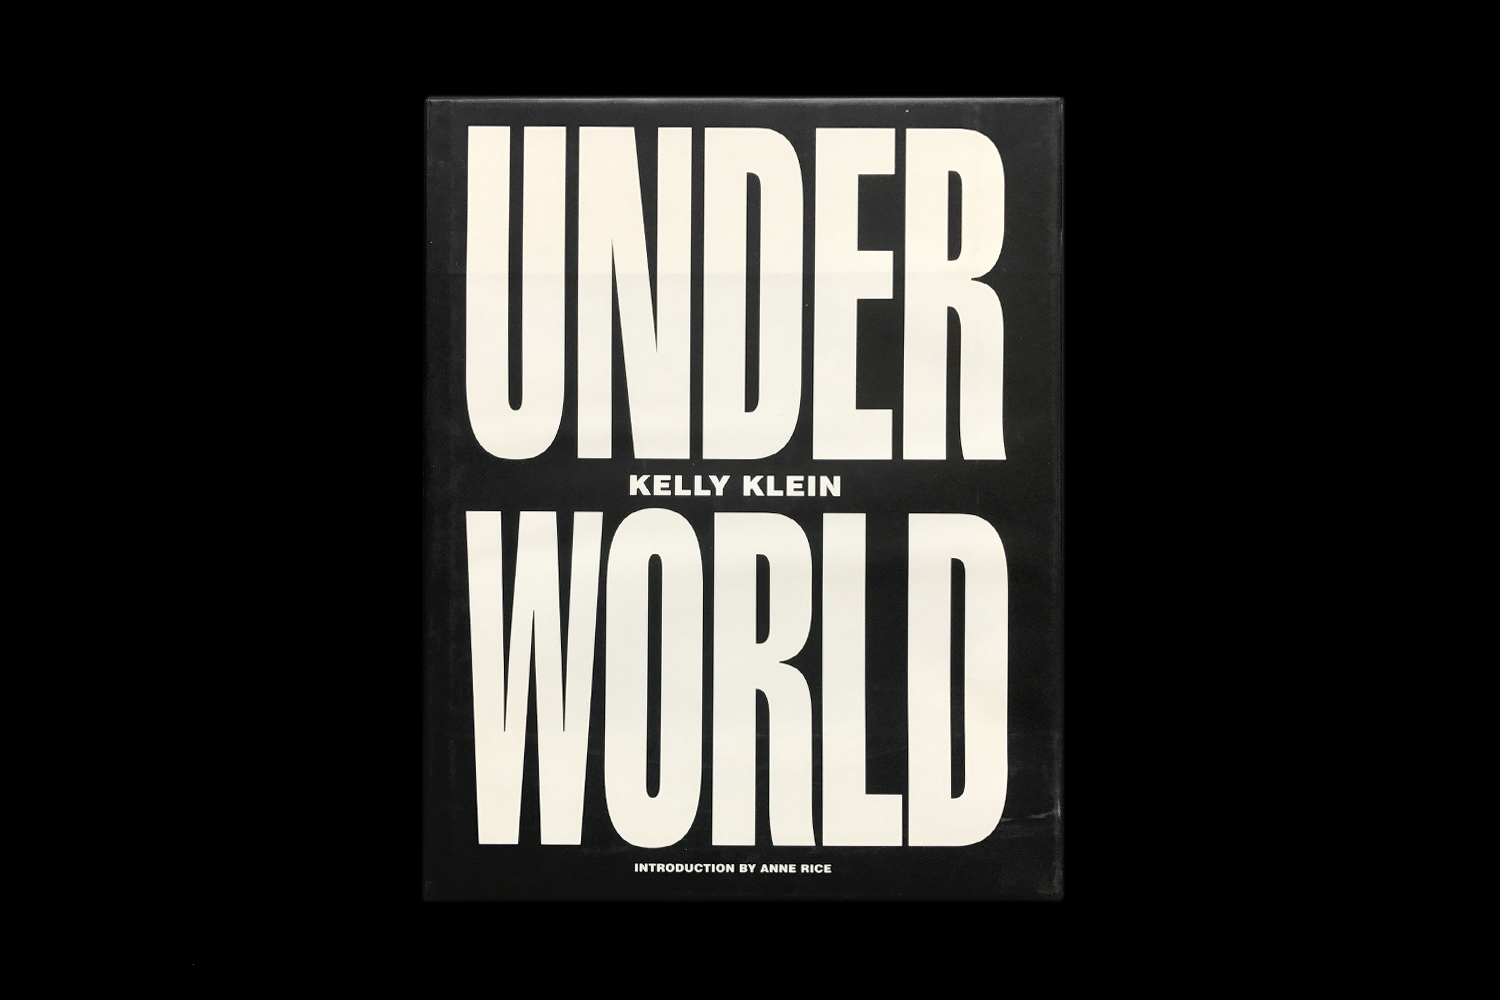 KK-Underworld-1.jpg